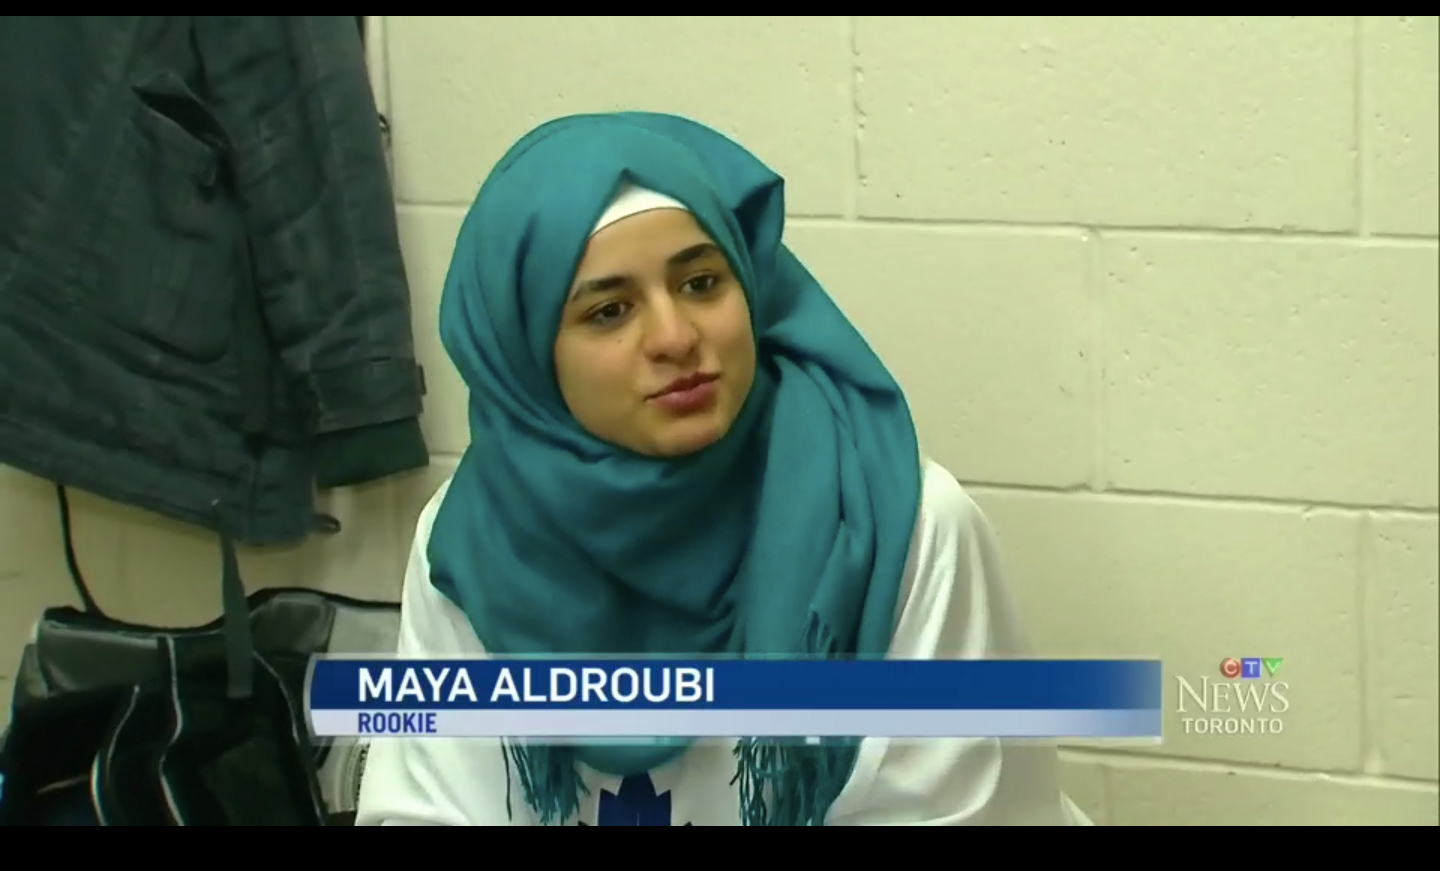 CTV News Report at 6pm  with Hockey 4 Youth students Maya Aldroubi & Khaled Al-Mouktaran. They spoke to Sean Leathong about the challenges back in Syria & what learning hockey has meant to them.